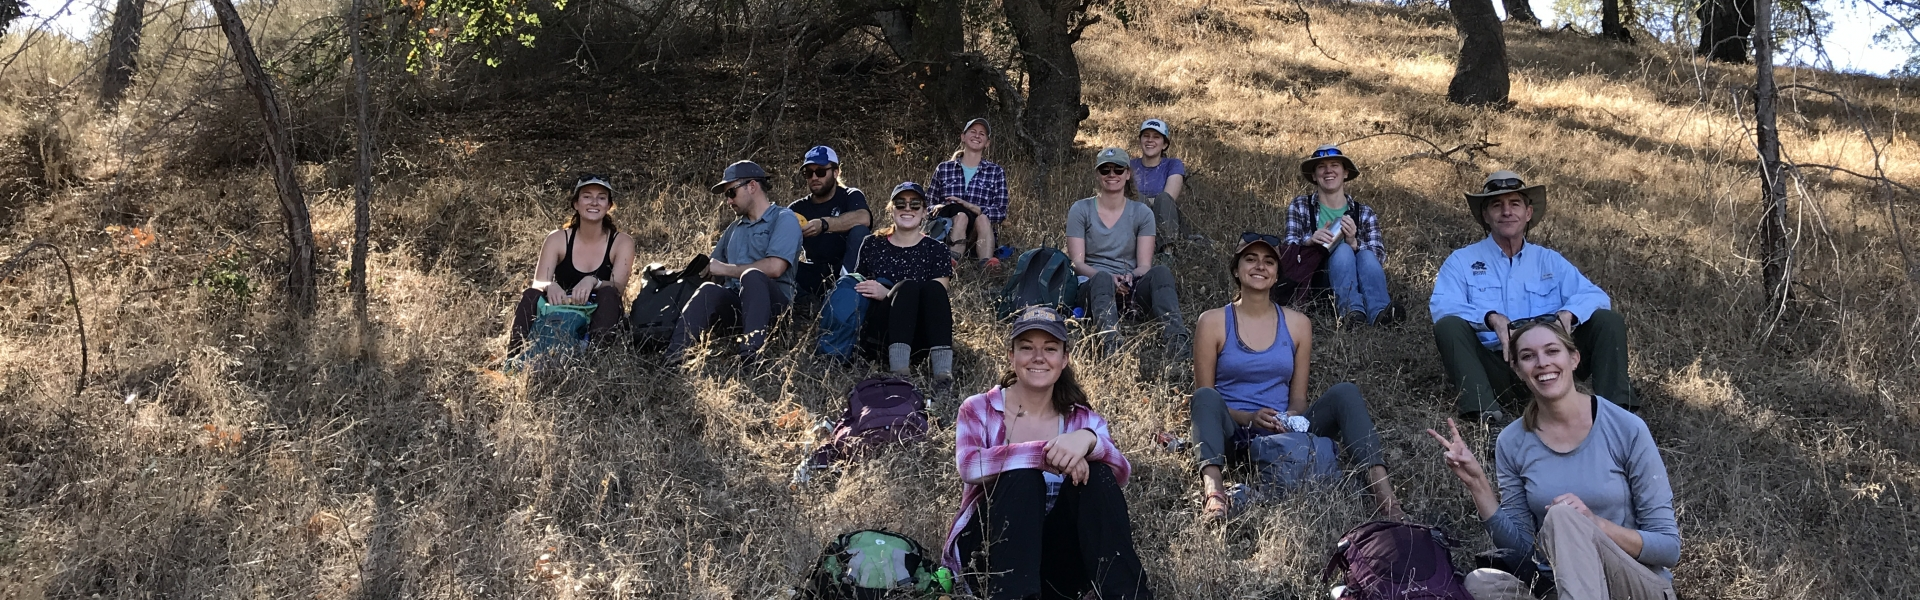 Students sitting in shade of oak trees